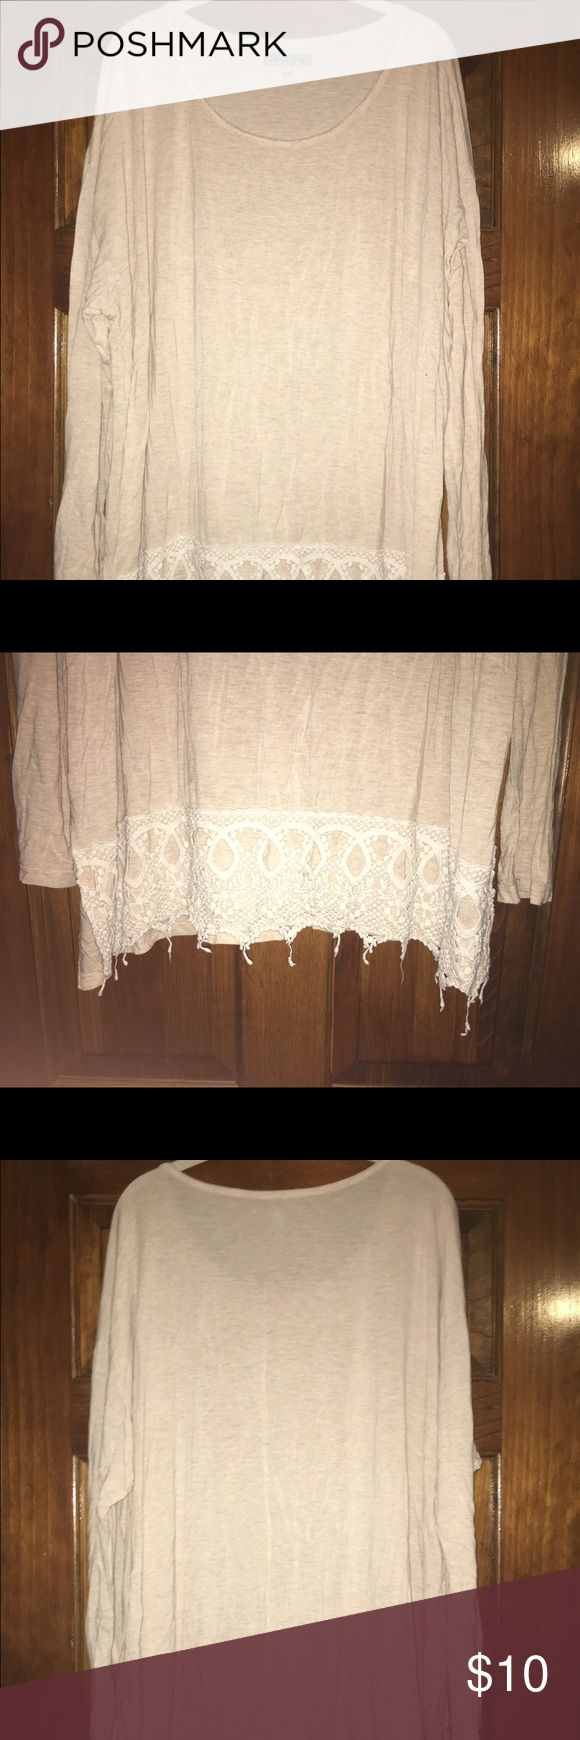 Lace Detail Top Super comfy and cute! The lace detail at the bottom really makes the top. Marshalls Tops Blouses